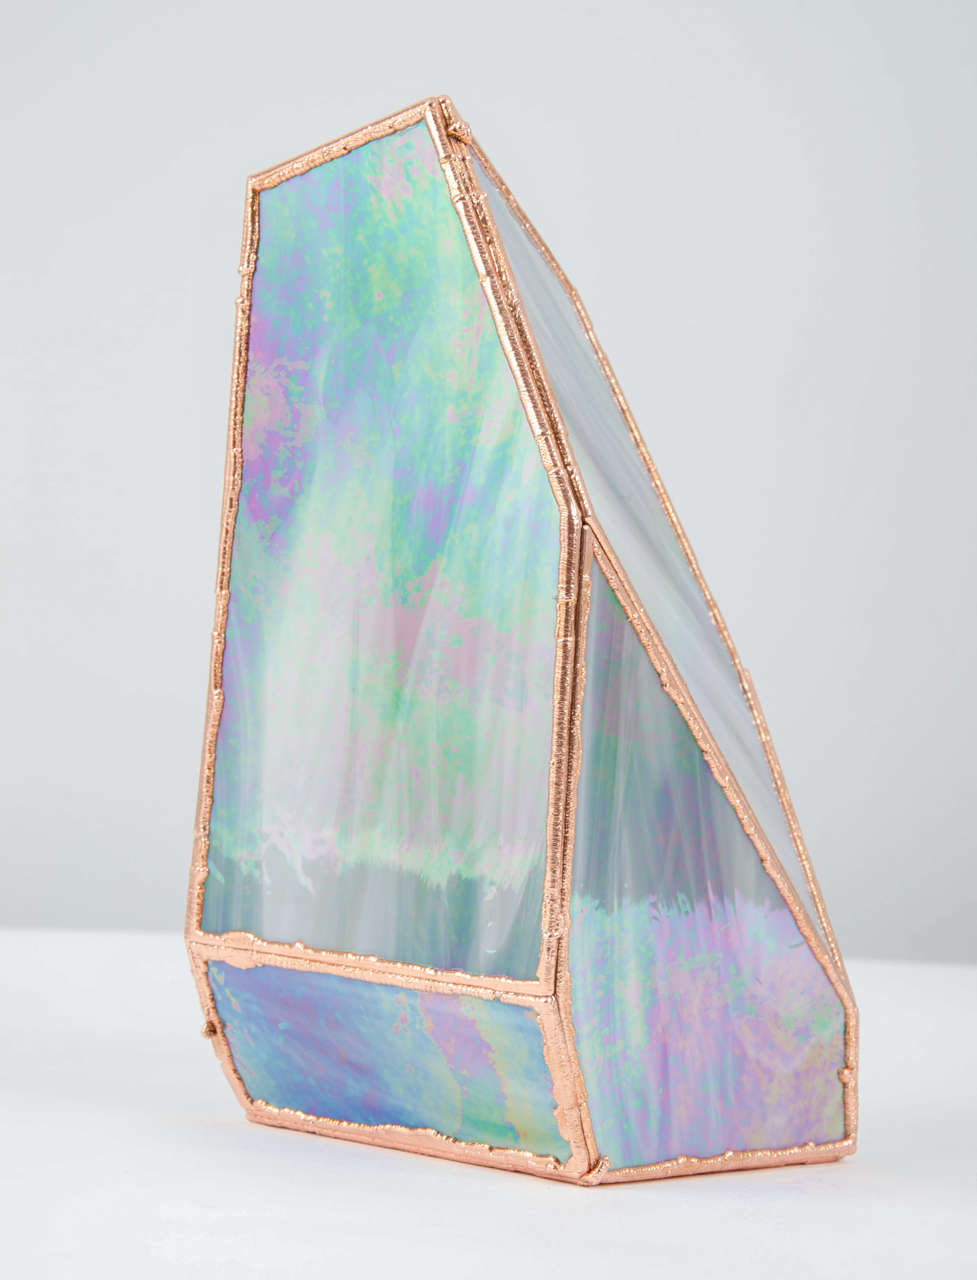 OverNight Vases, Unique Glass and Copper Mixed Colored Vases by Odd Matter For Sale 2